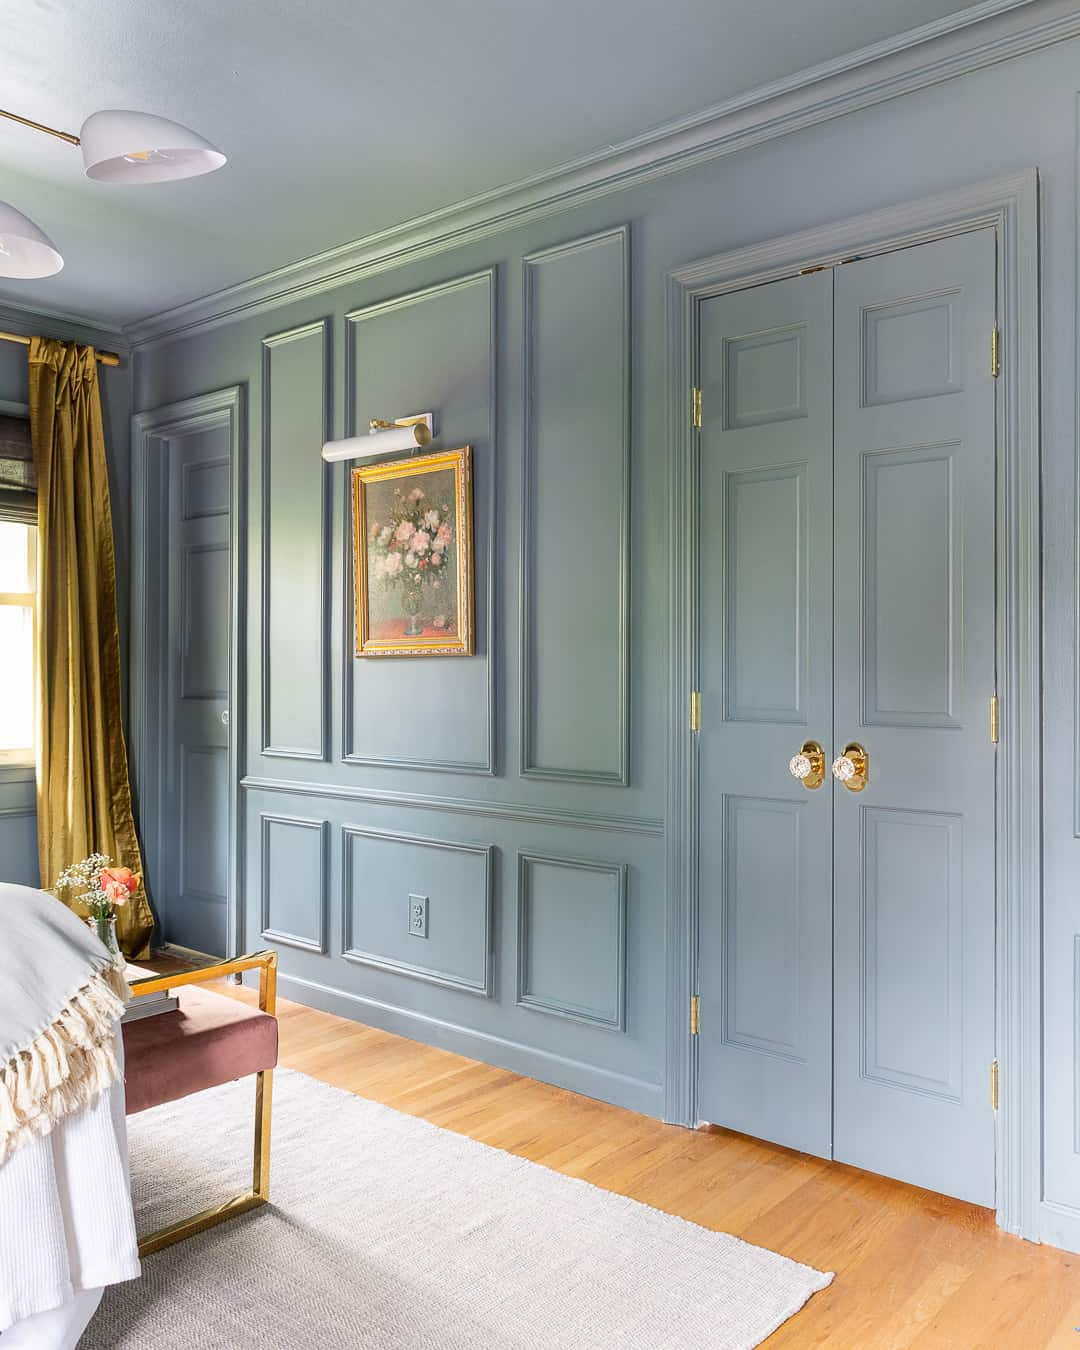 wall-molding-trim-metrie-blue-bedroom